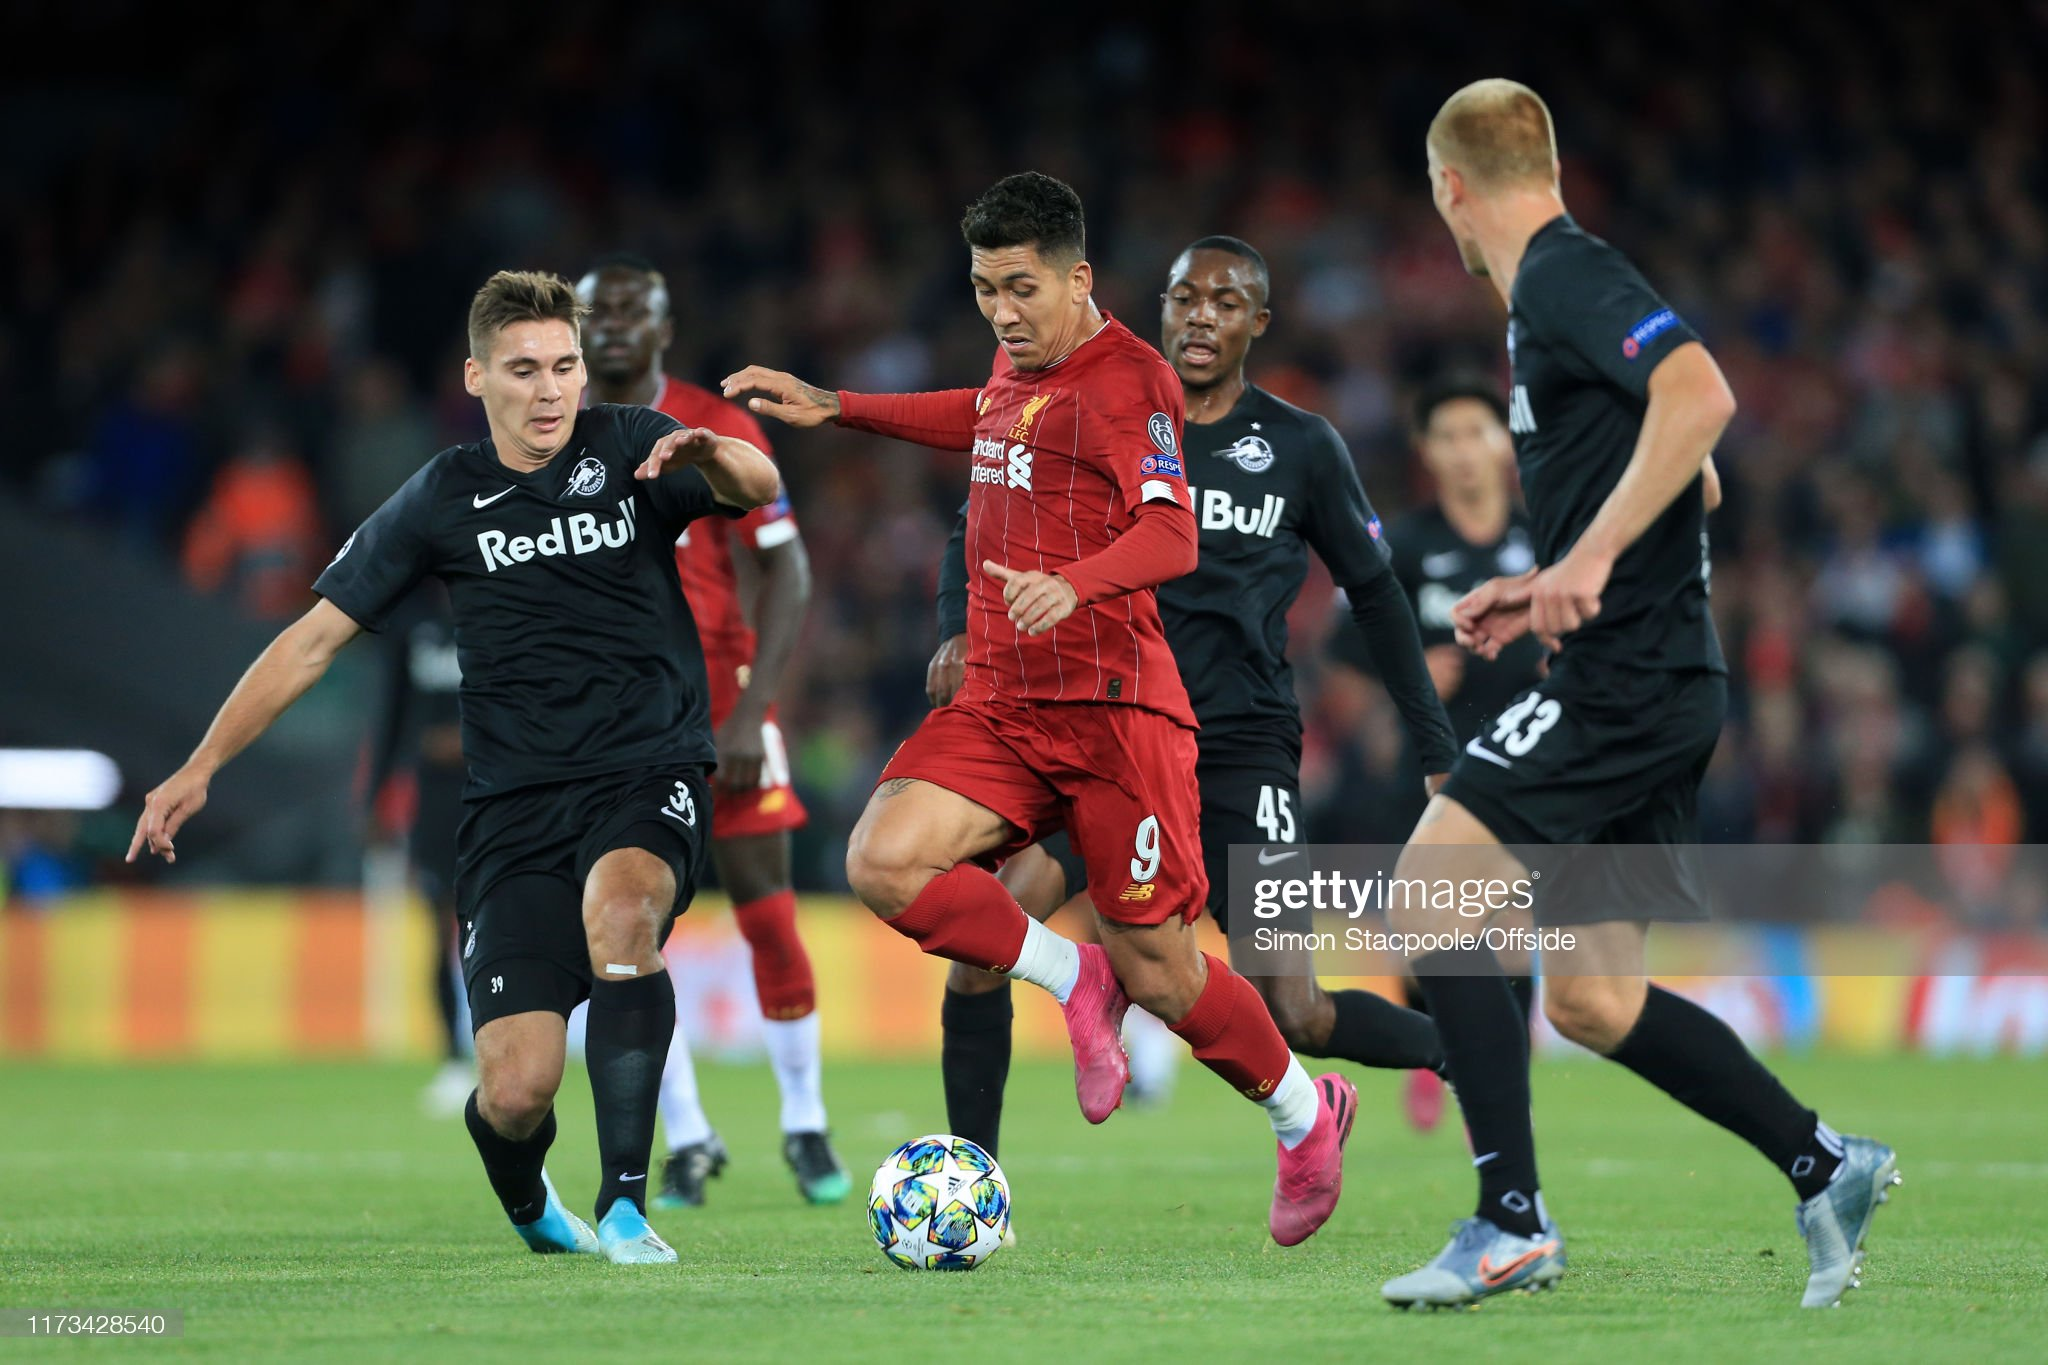 Salzburg v Liverpool preview, prediction and odds